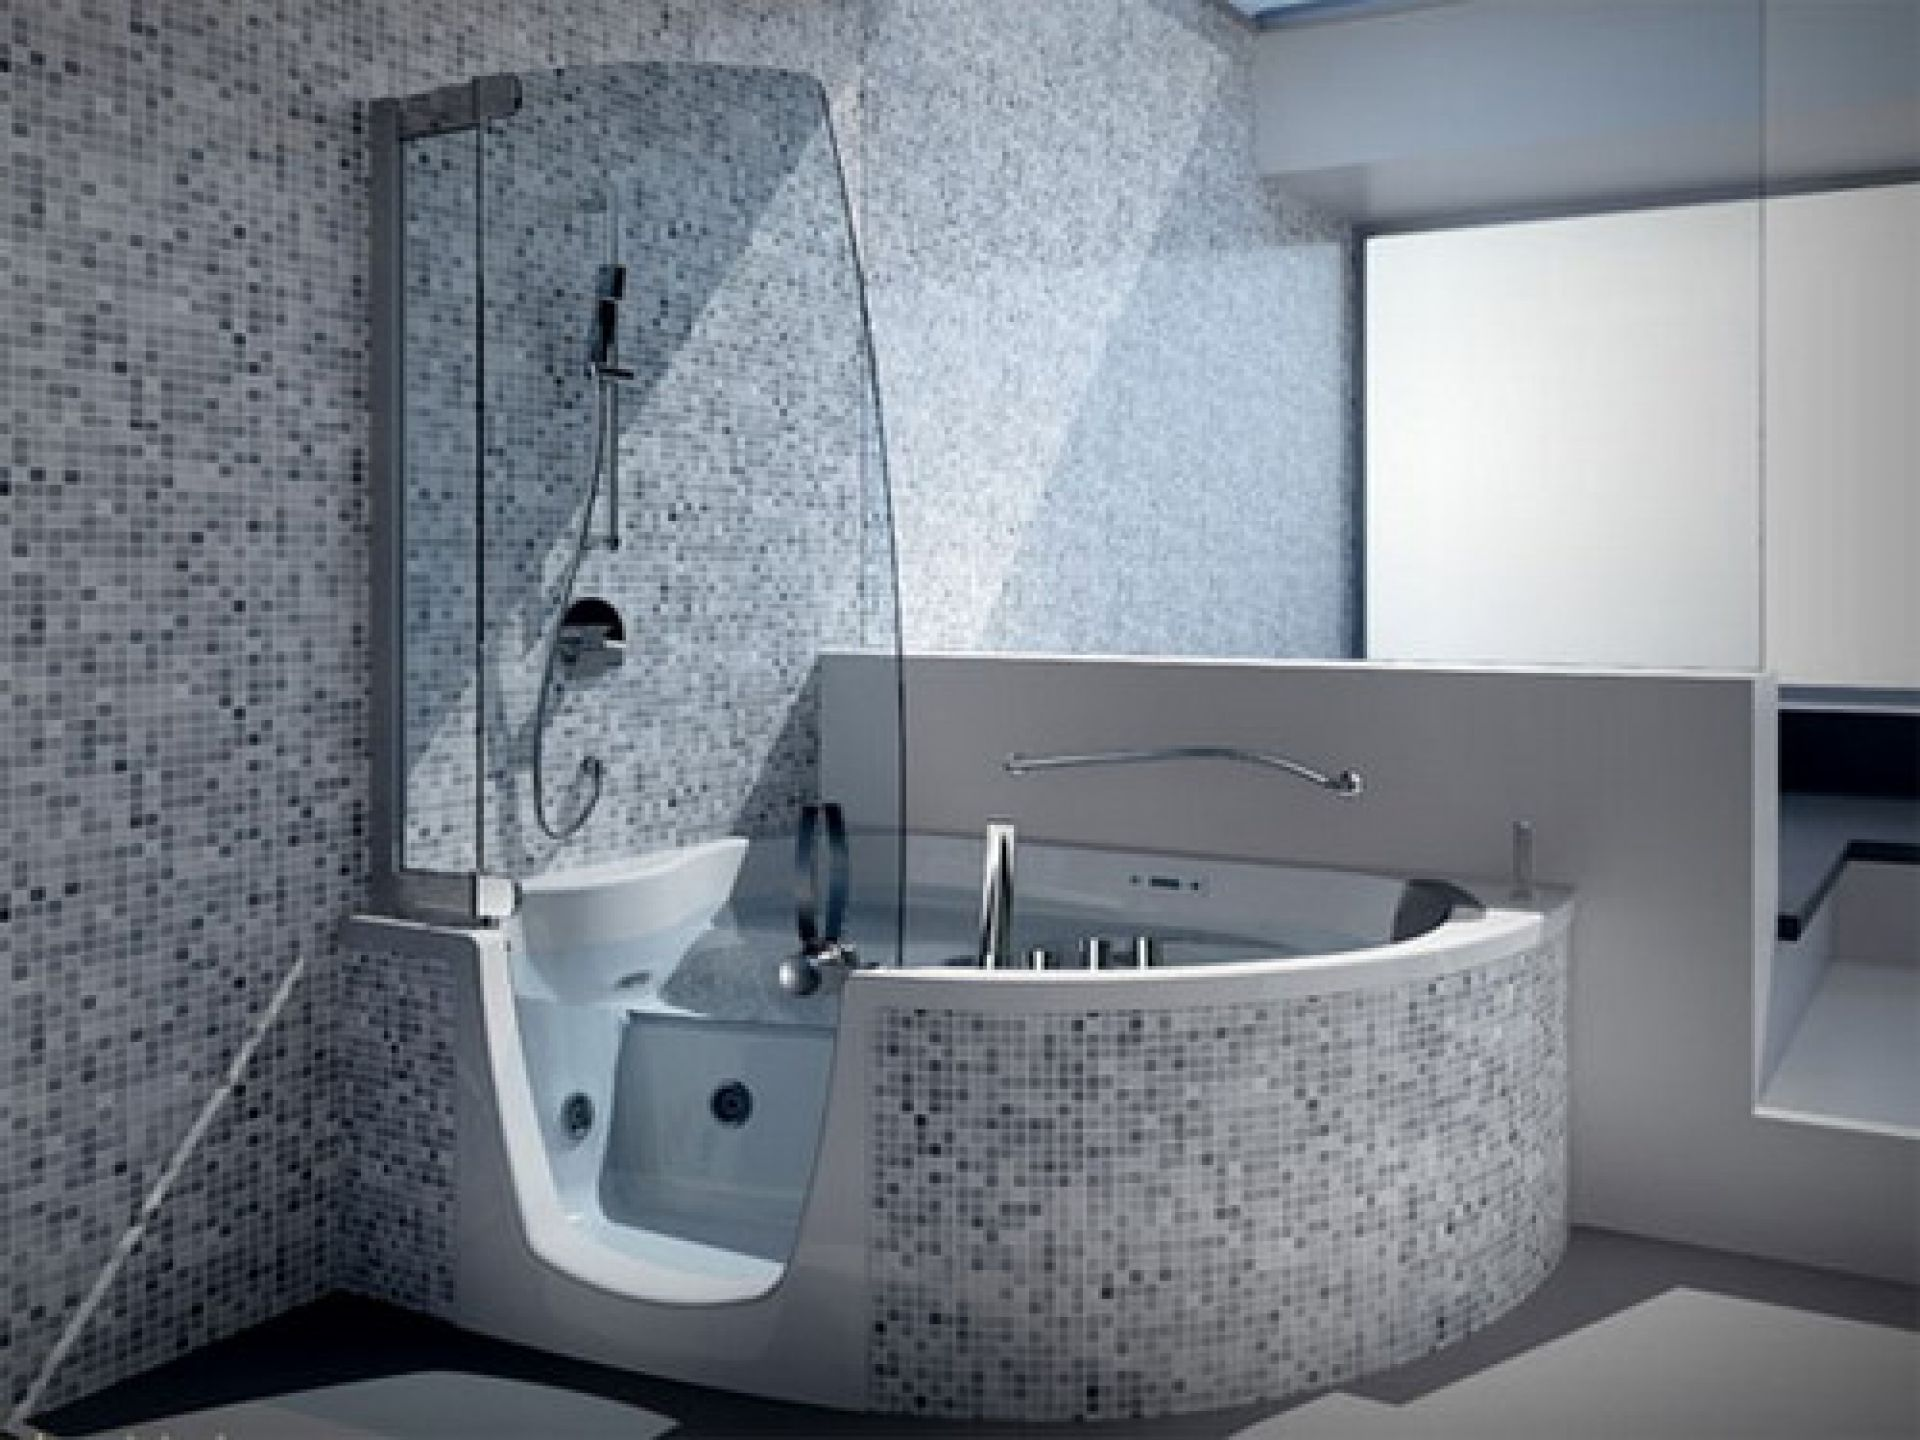 Splendid Corner Step In Whirlpool Tub With Modern Steam Shower Tub Combo  And Clear Glass